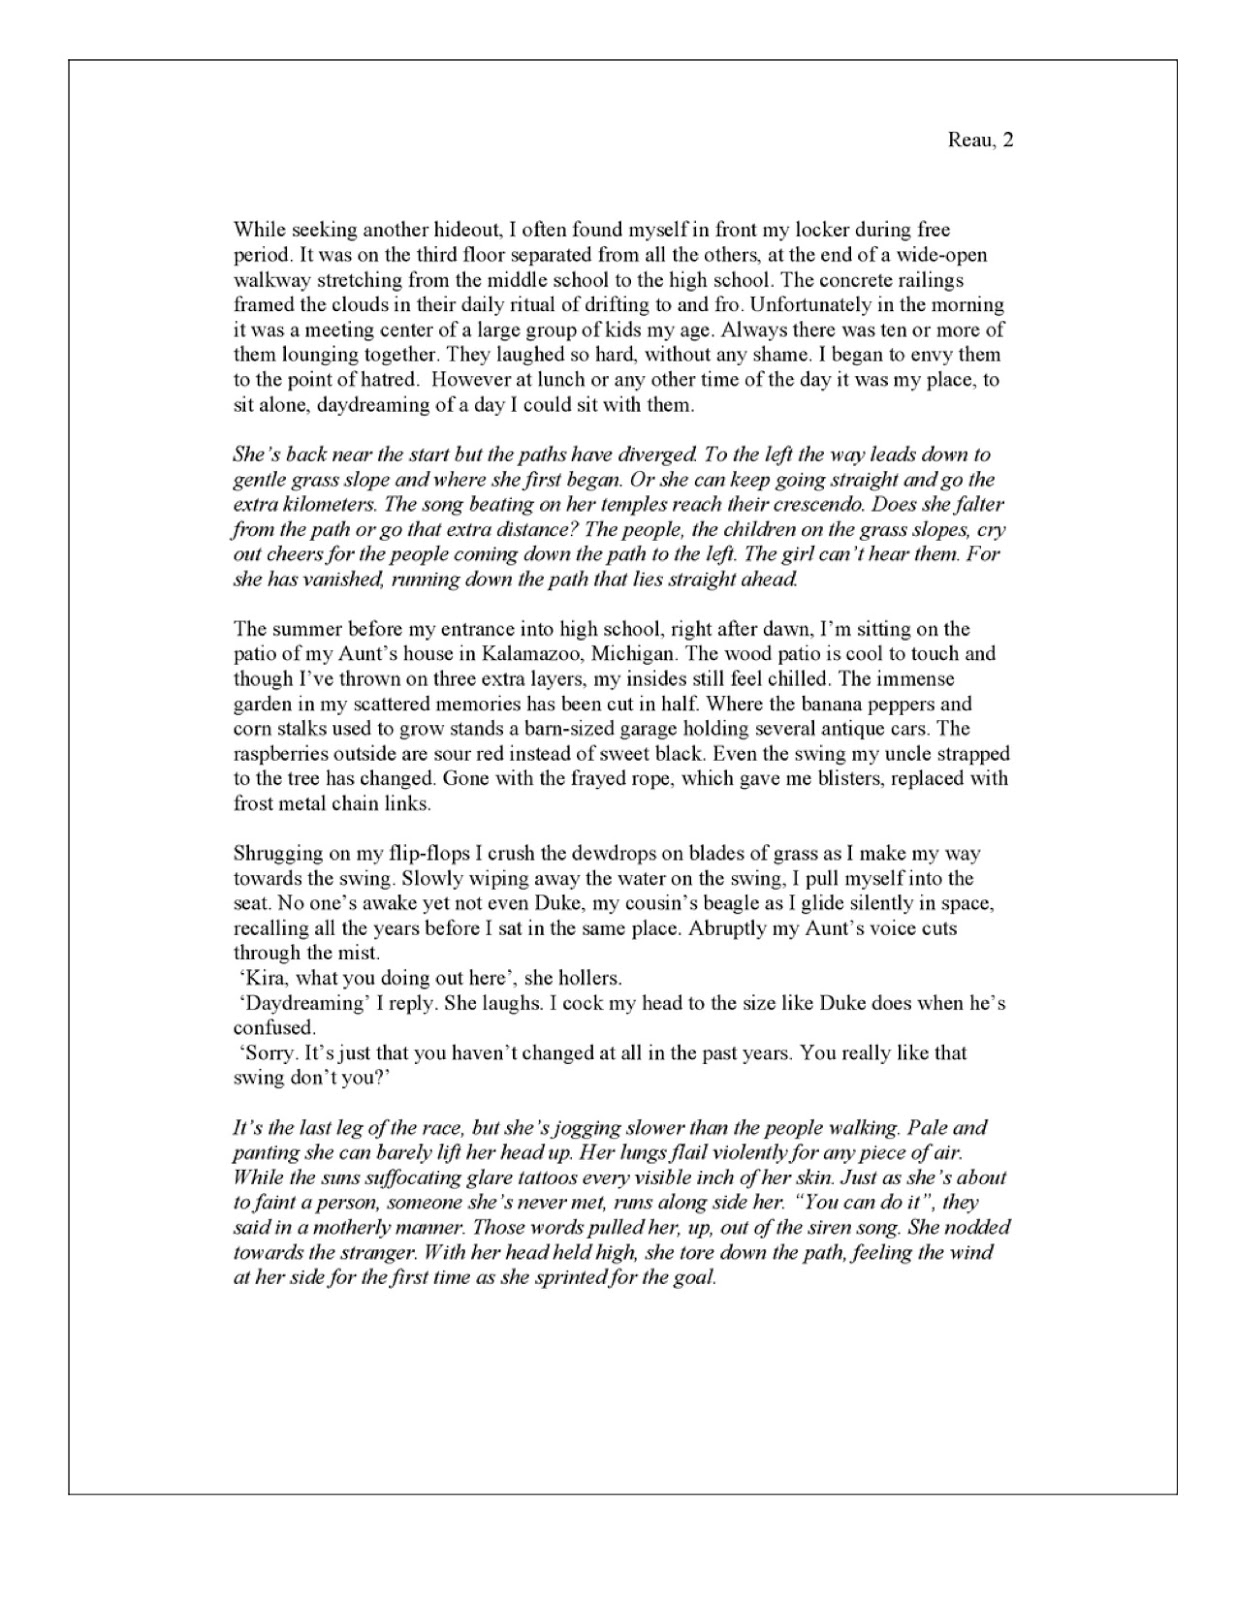 narration essay narrative essay how to write narrative essays to  write a narrative essay about my dream essay writing school